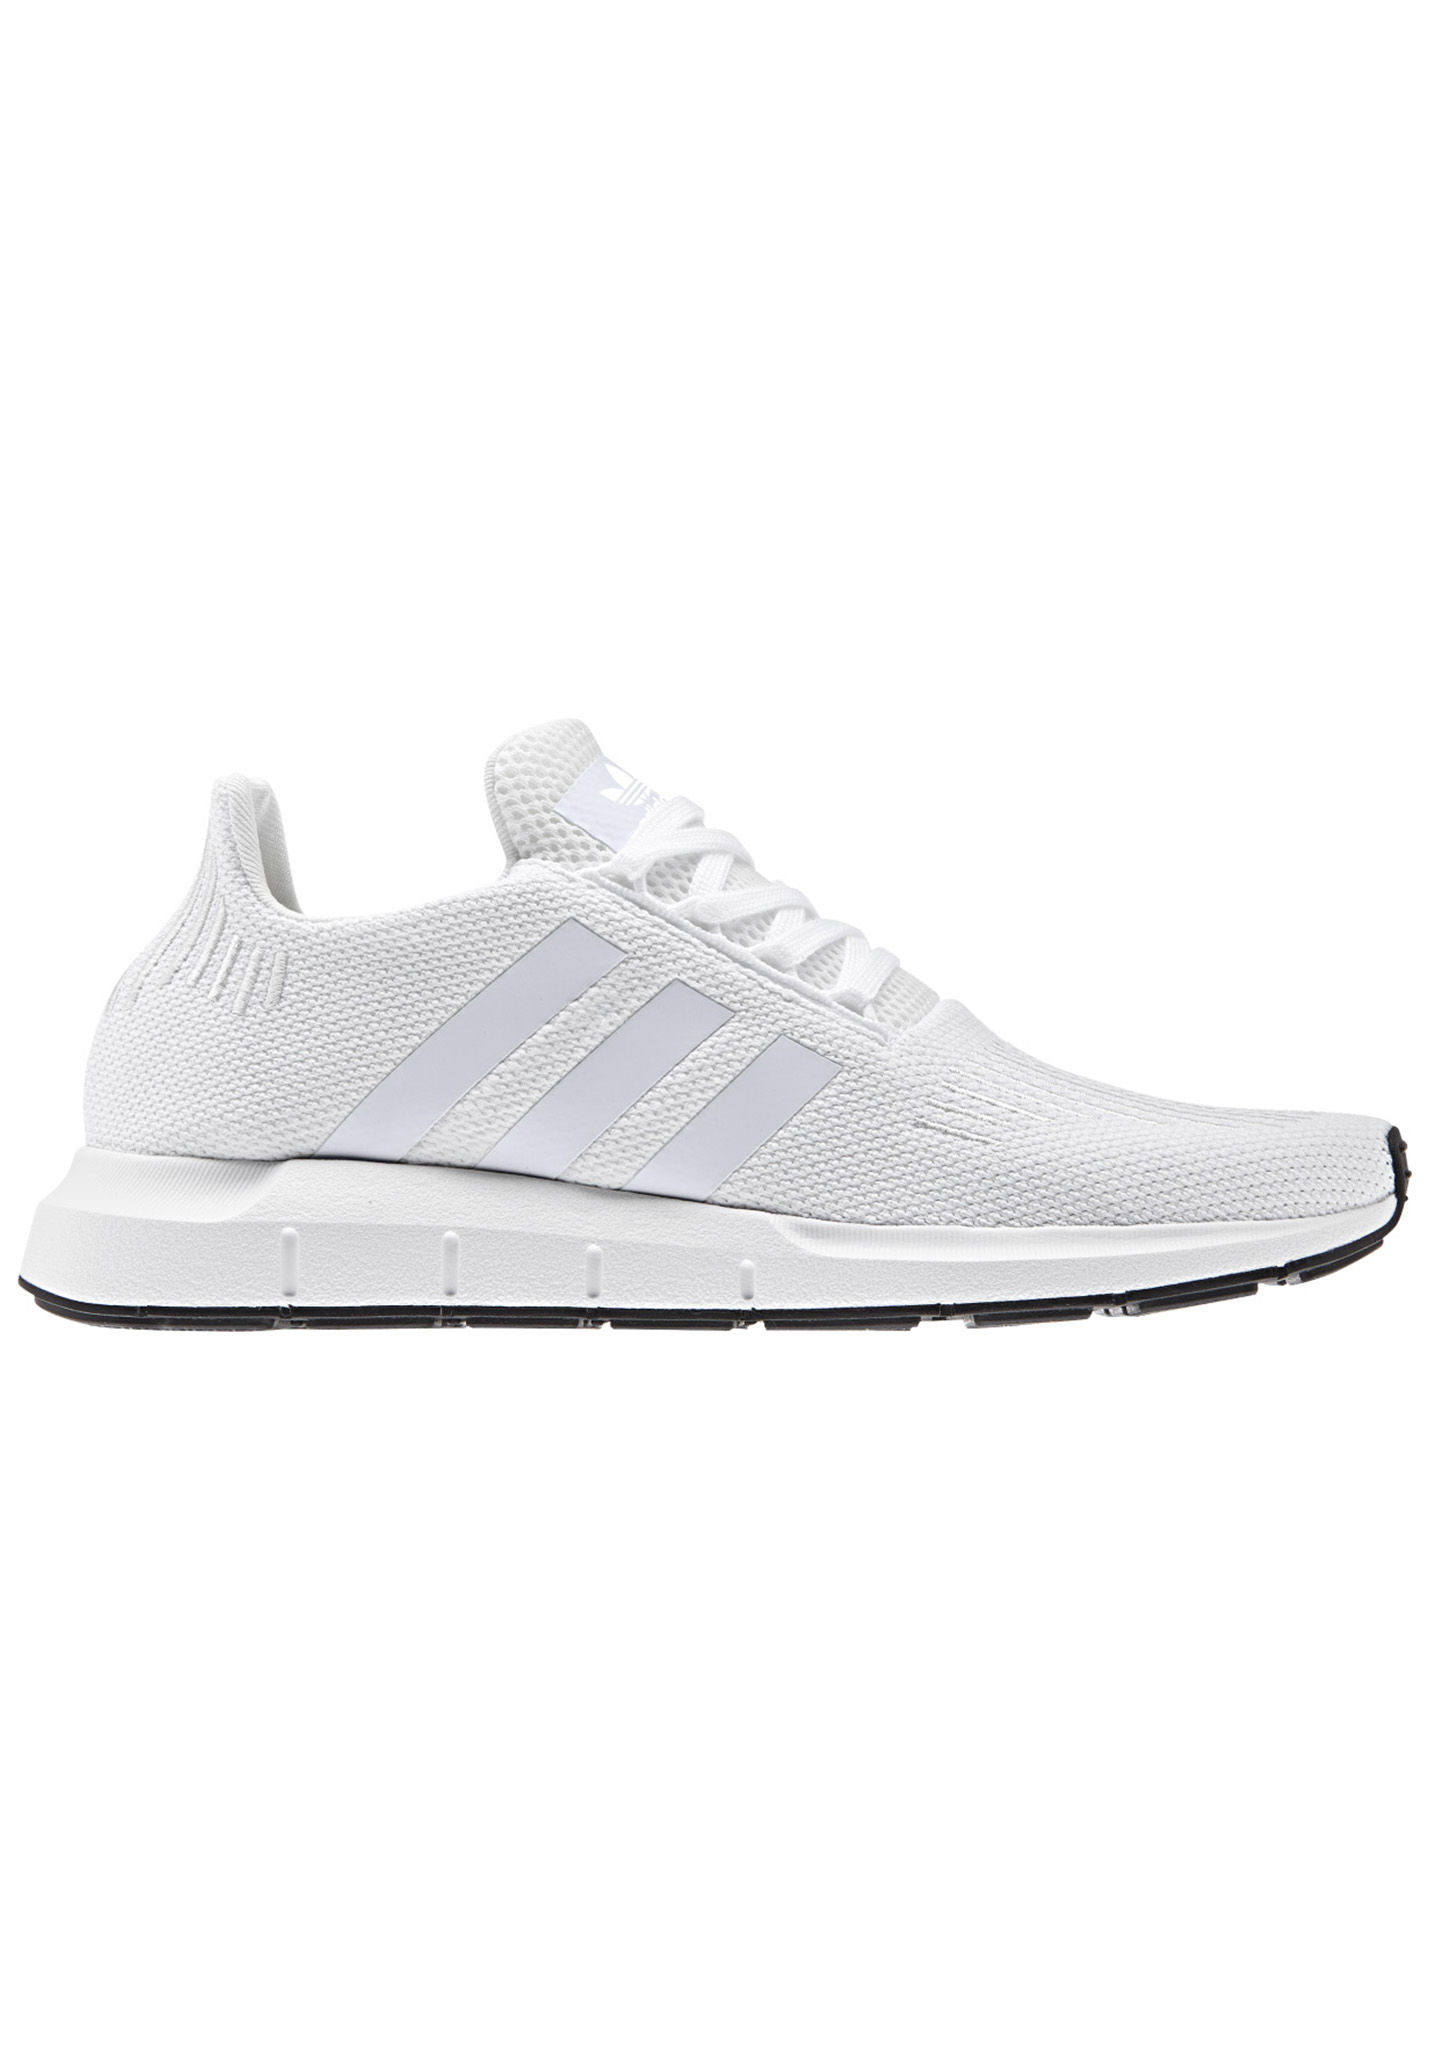 ADIDAS ORIGINALS Swift Run - Sneakers for Men - White - Planet Sports 982e4d4abe